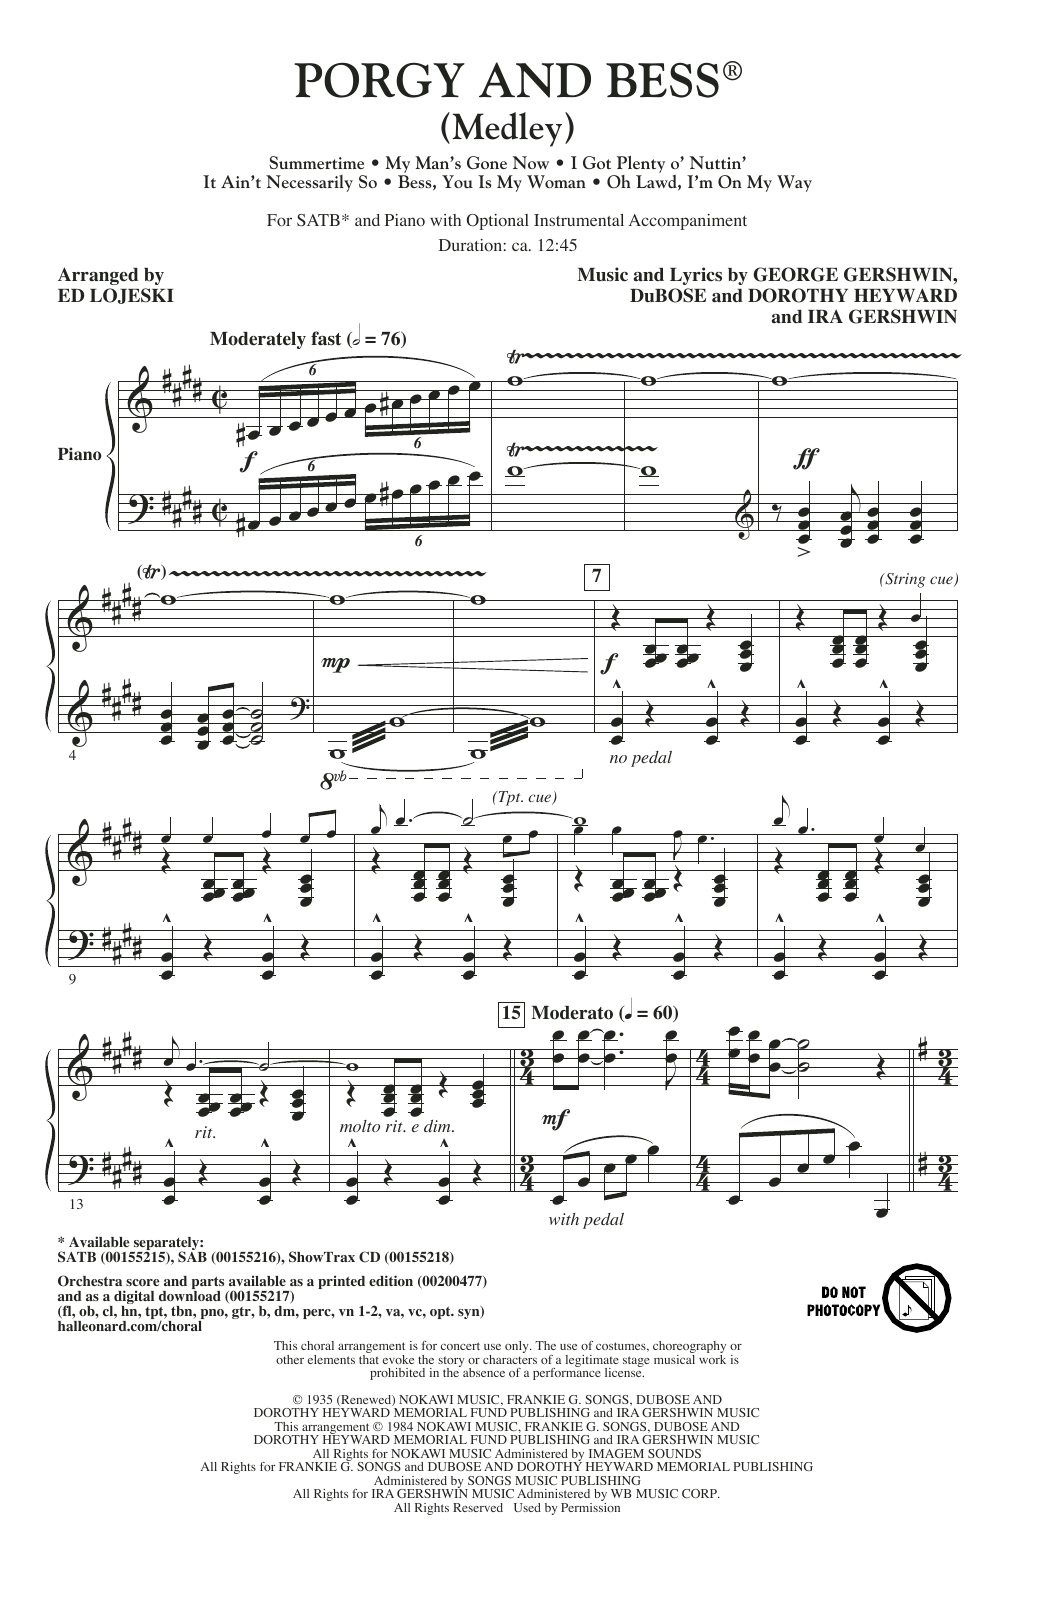 Ed Lojeski Porgy And Bess (Medley) sheet music notes and chords. Download Printable PDF.